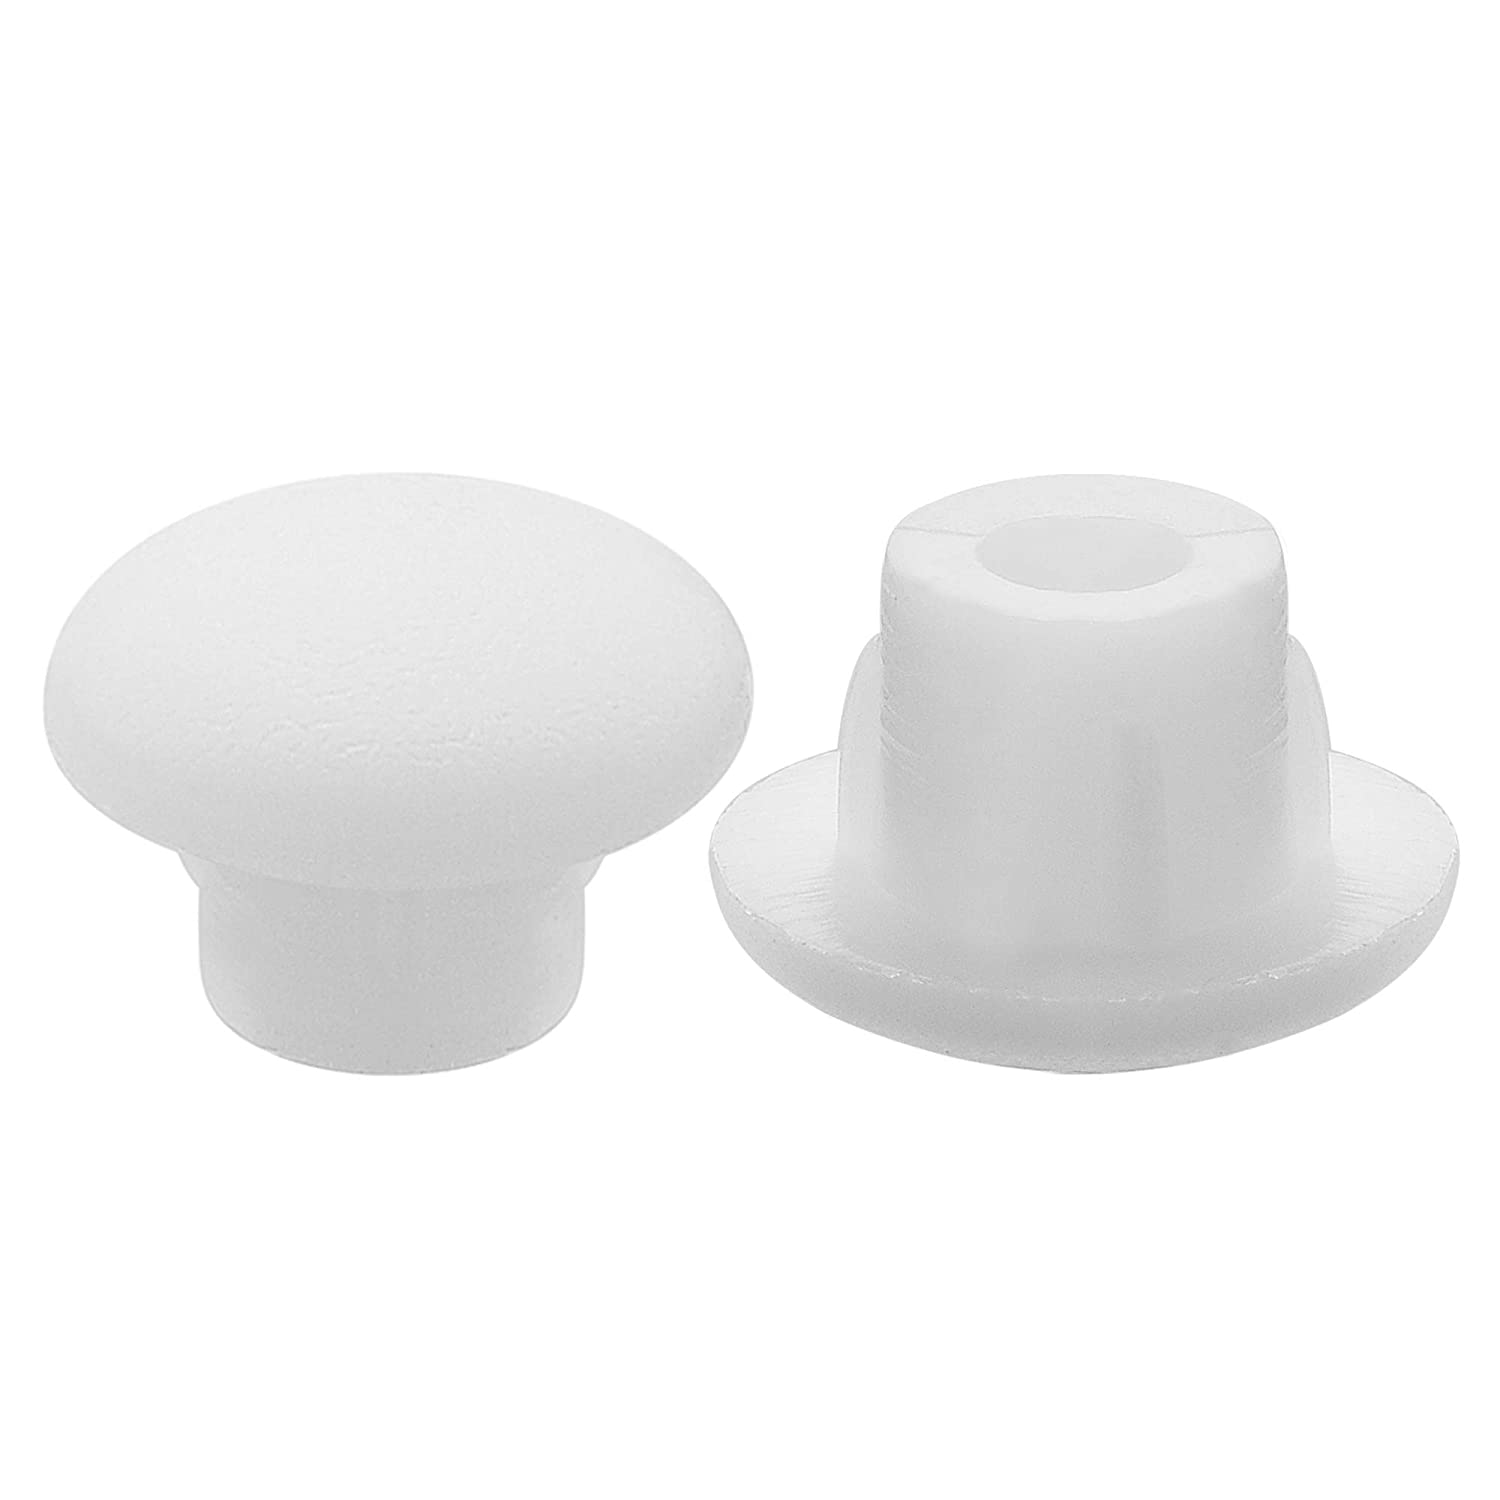 3//16 Plastic Hole Plug Button Top for Cabinet Cupboard Shelf Bluecell Pack of 300pcs 5mm Bluecell World 5mm, White